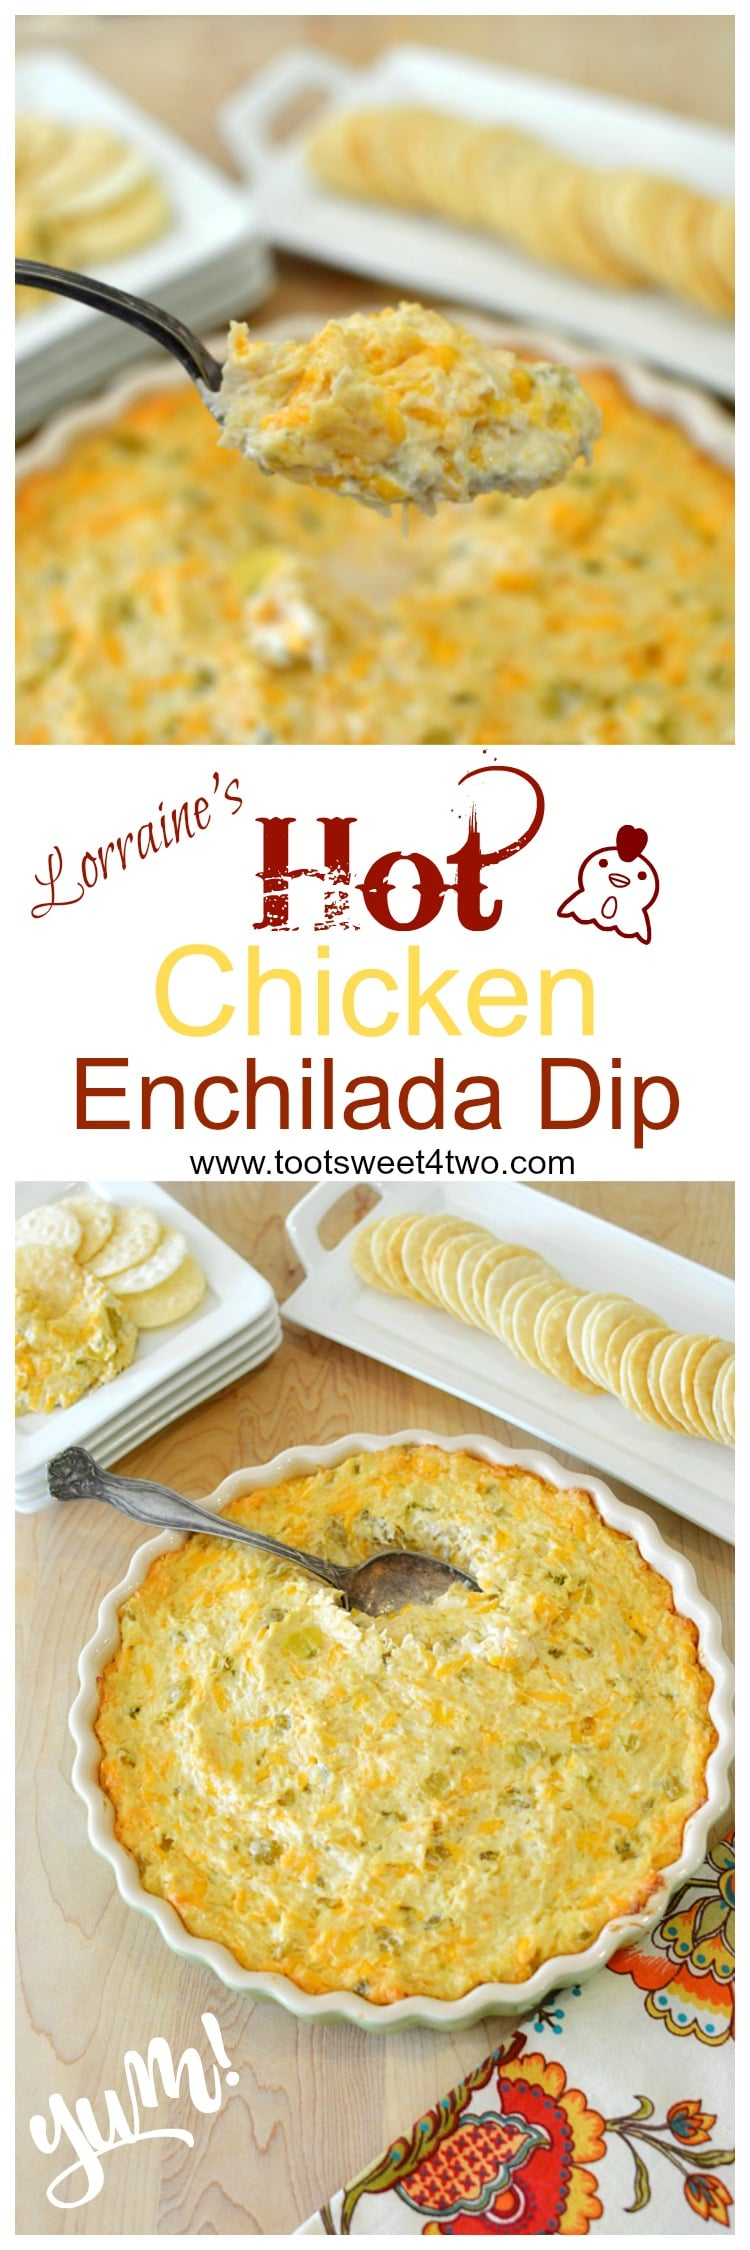 Looking for great dip recipes that are hot, easy, yummy and delicious? Look no further! Lorraine's Hot Chicken Enchilada Dip is one of those dip recipes that's gone in a flash! Guaranteed! Creamy and cheesy with a slight piquant bite from the green chilies and jalapeno, this Mexican-inspired appetizer dip is a keeper! One of the most popular dip recipes on my blog, this hot and cheesy chicken enchilada dip is also one of the best dips for parties because it is so incredibly easy to make. Made with (gasp!) canned chicken, it requires no pre-cooking time until you pop it in the oven to heat through until bubbly. Traditionally served with tortilla chips, this dish makes a great cracker dip, too! | www.tootsweet4two.com